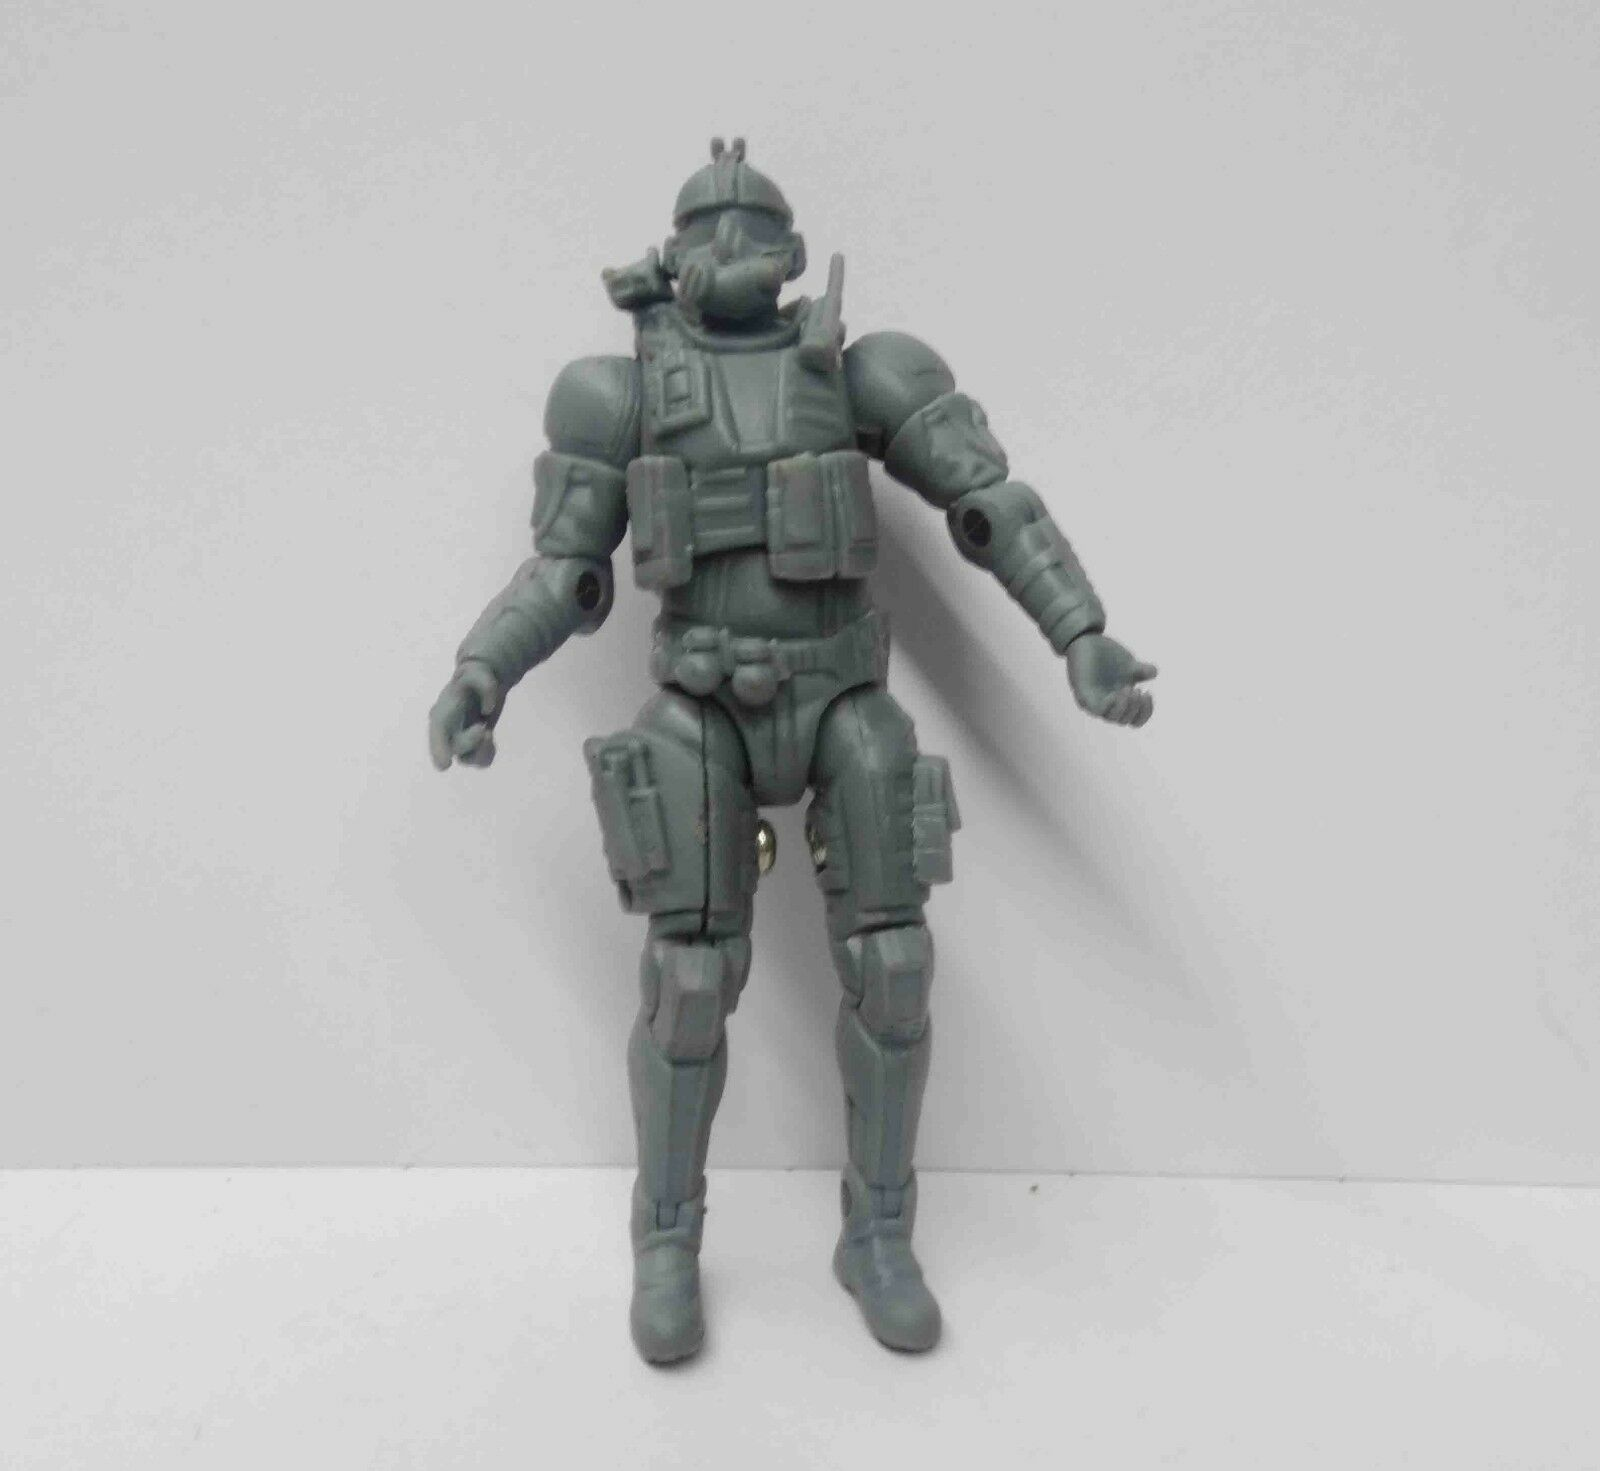 UNIMAX Gamestars Crysis 2 CELL Assault Unit Action Figure 3.75  Predotype